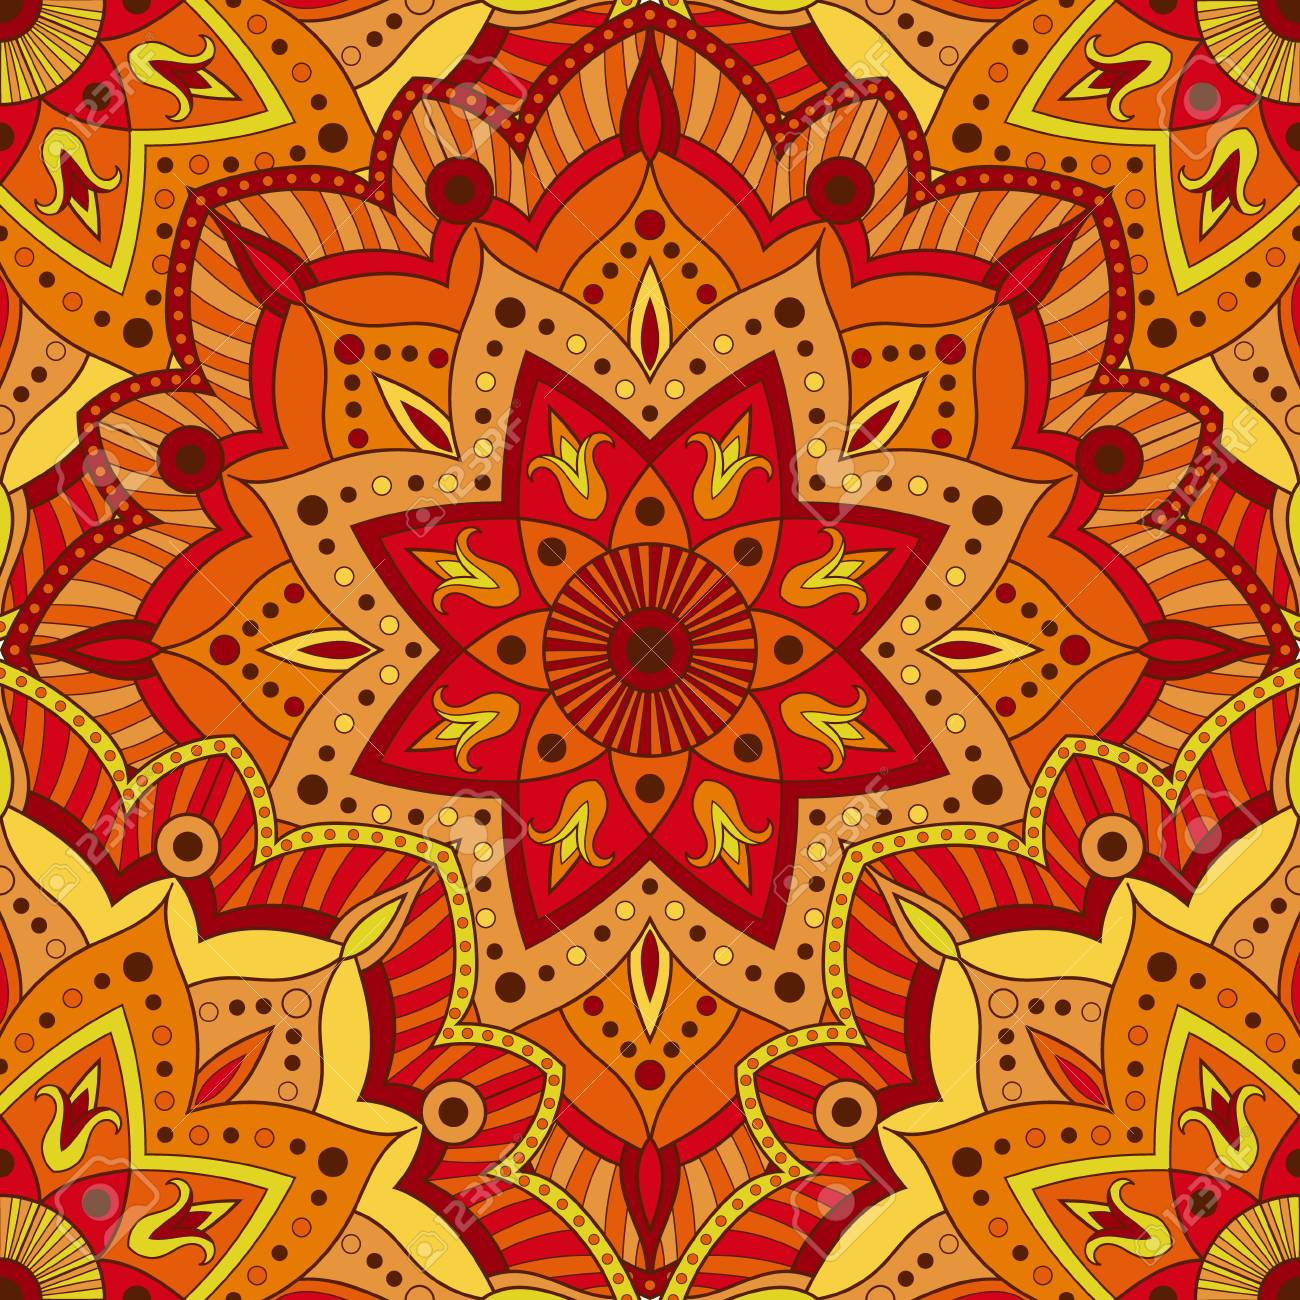 Seamless Indian Pattern For Wrapping Paper Fabric Or Wallpaper Hand Drawn Mandala Decoration